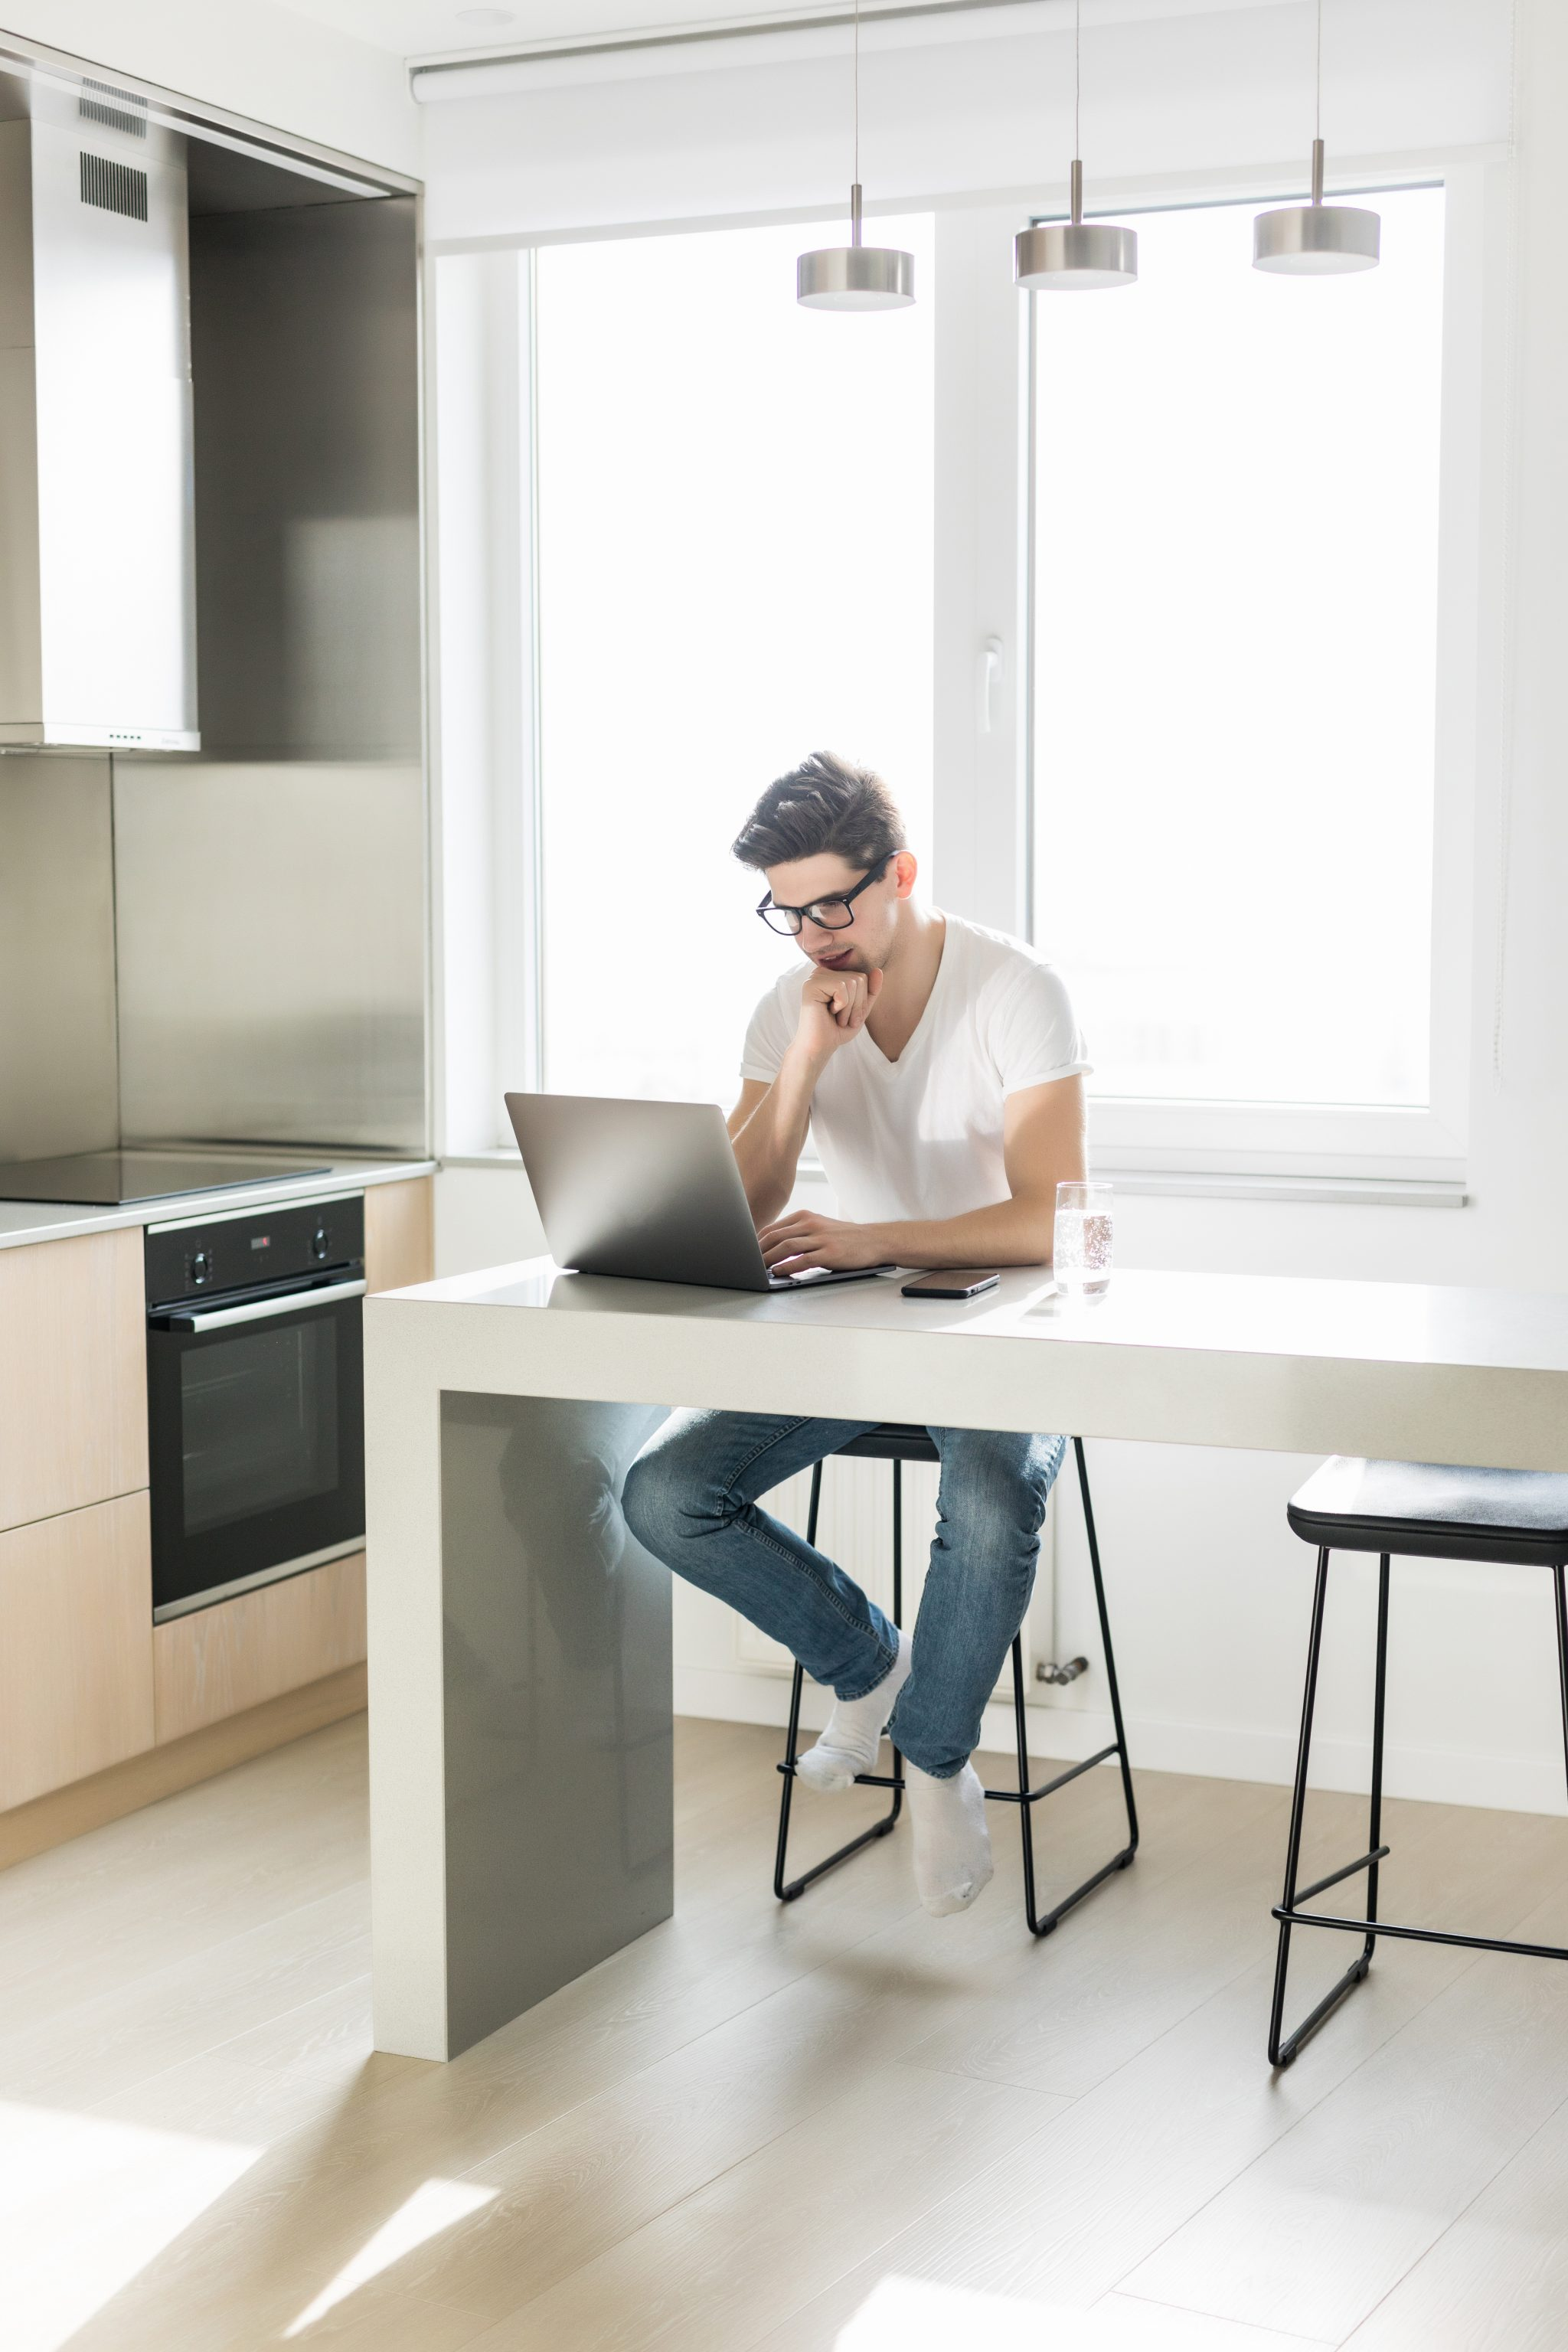 Handsome man using a laptop pc in the kitchen